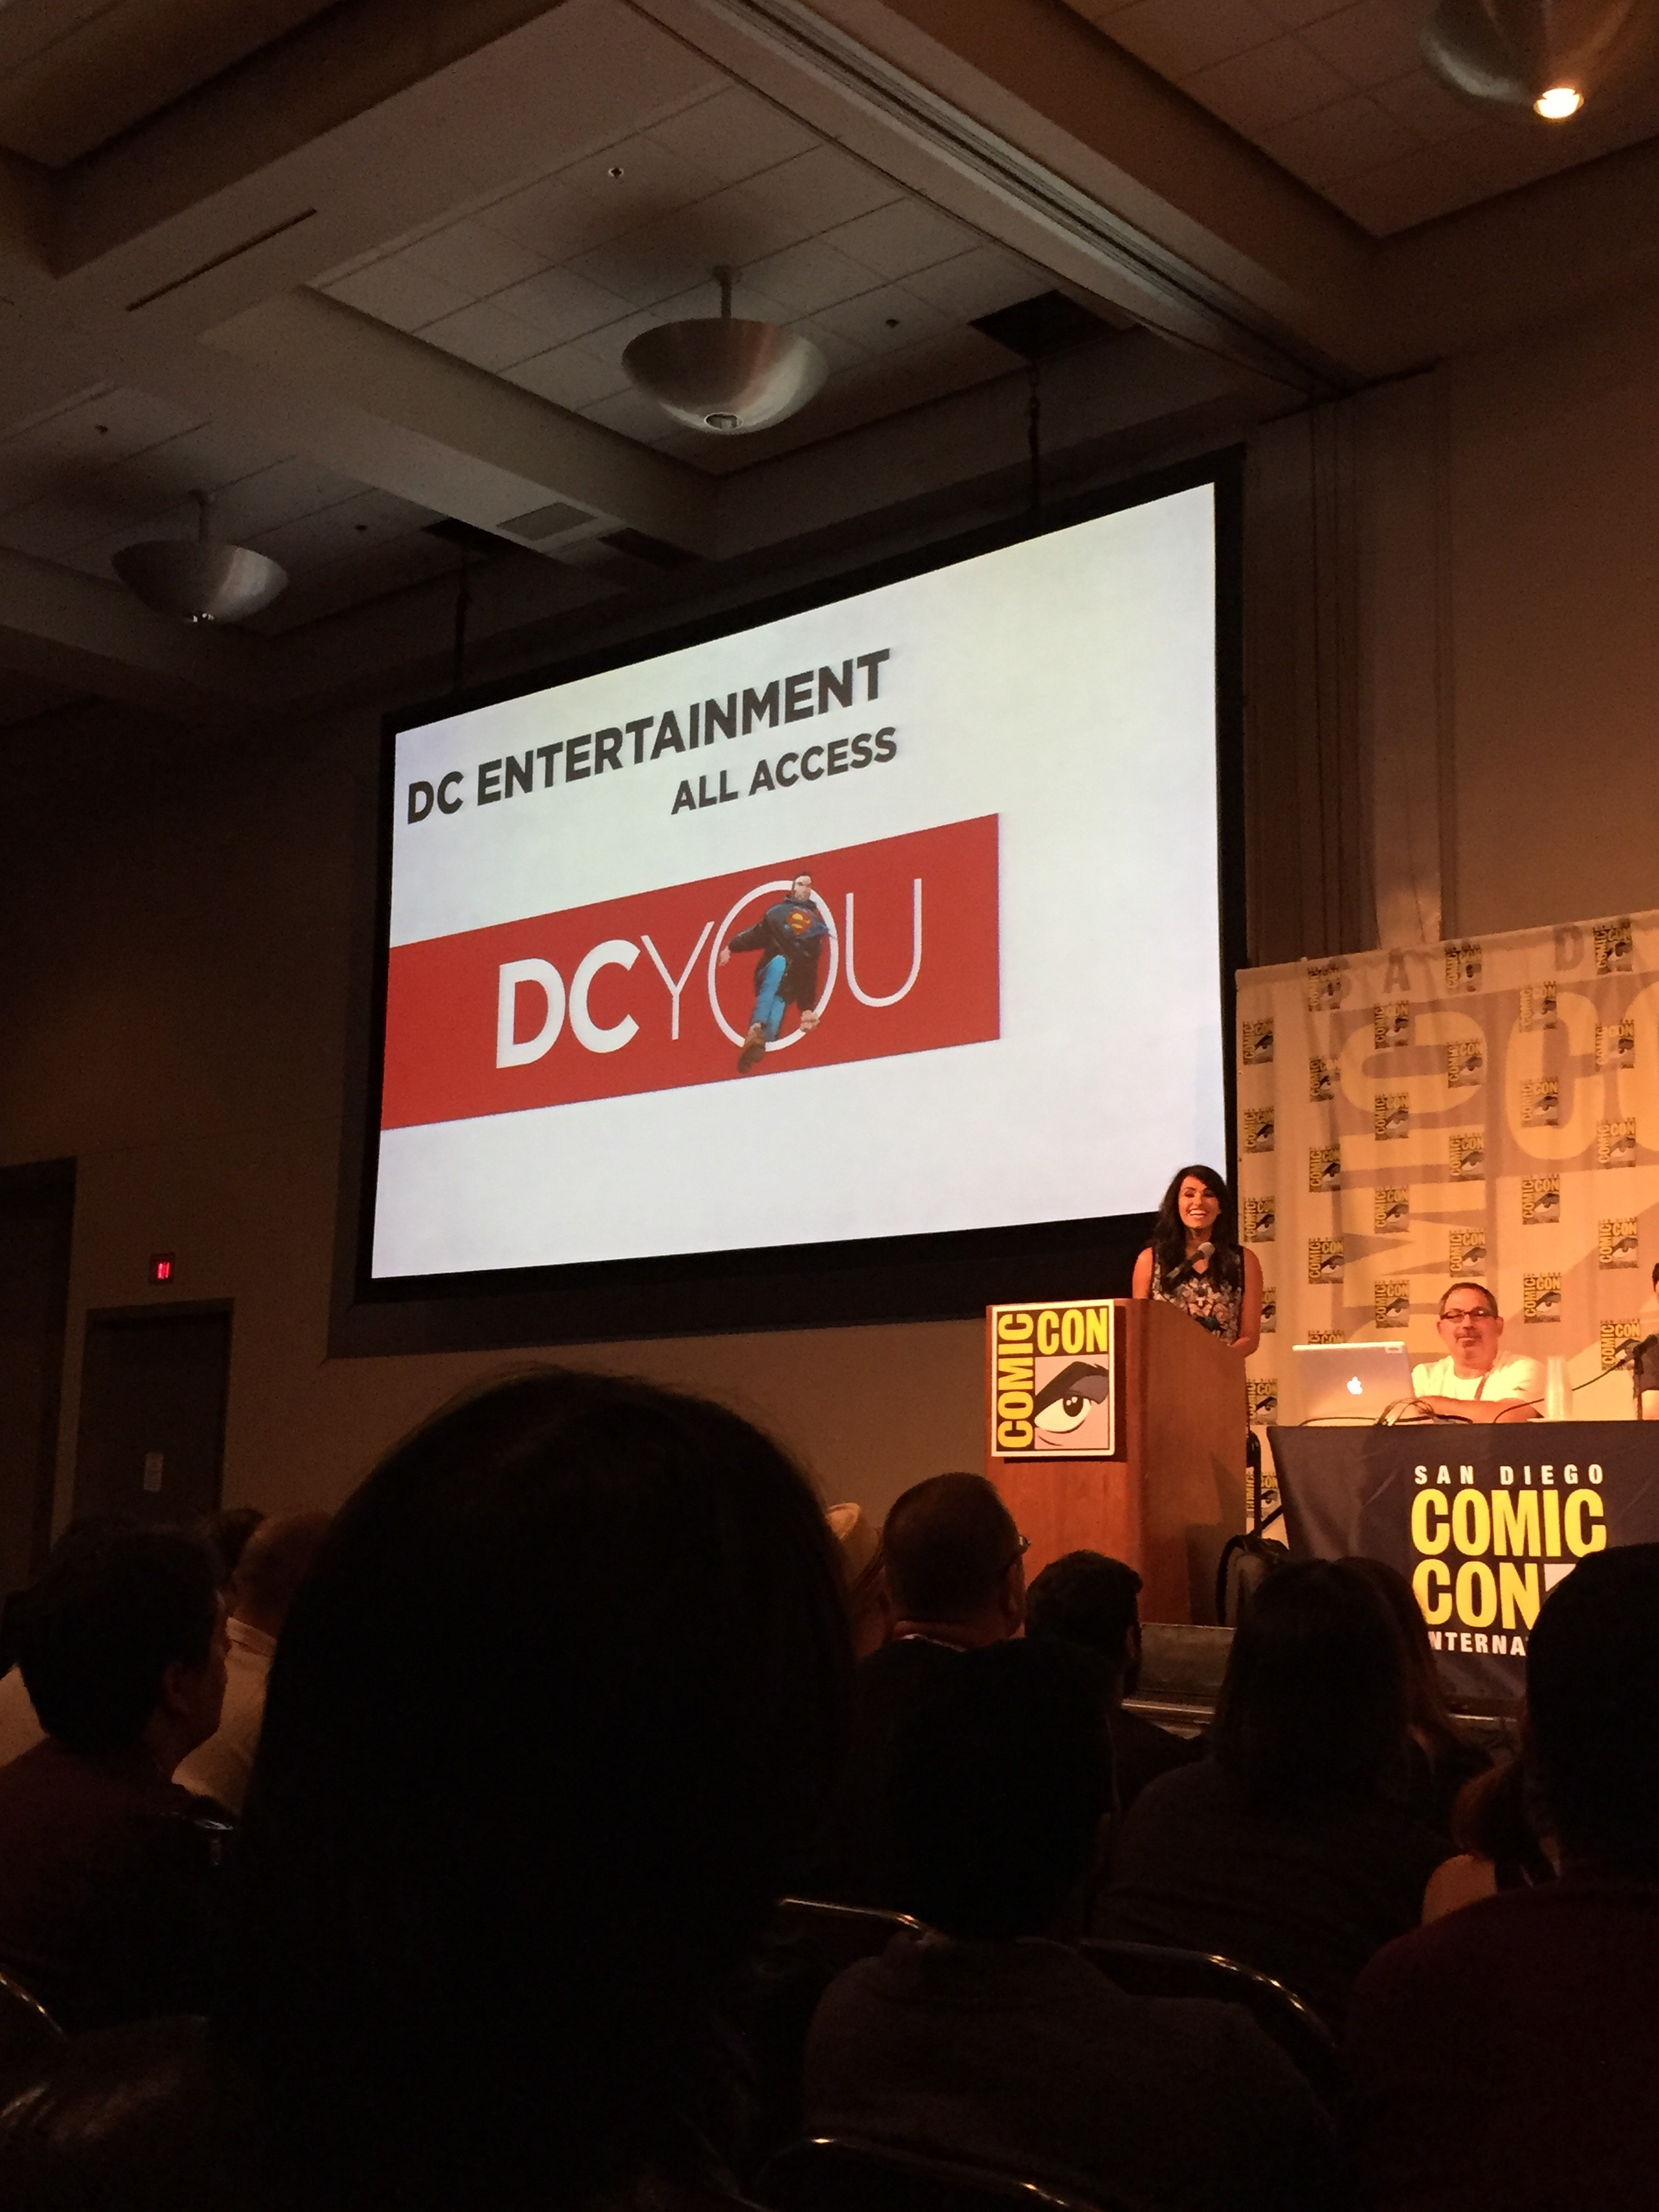 DC YOU is launched